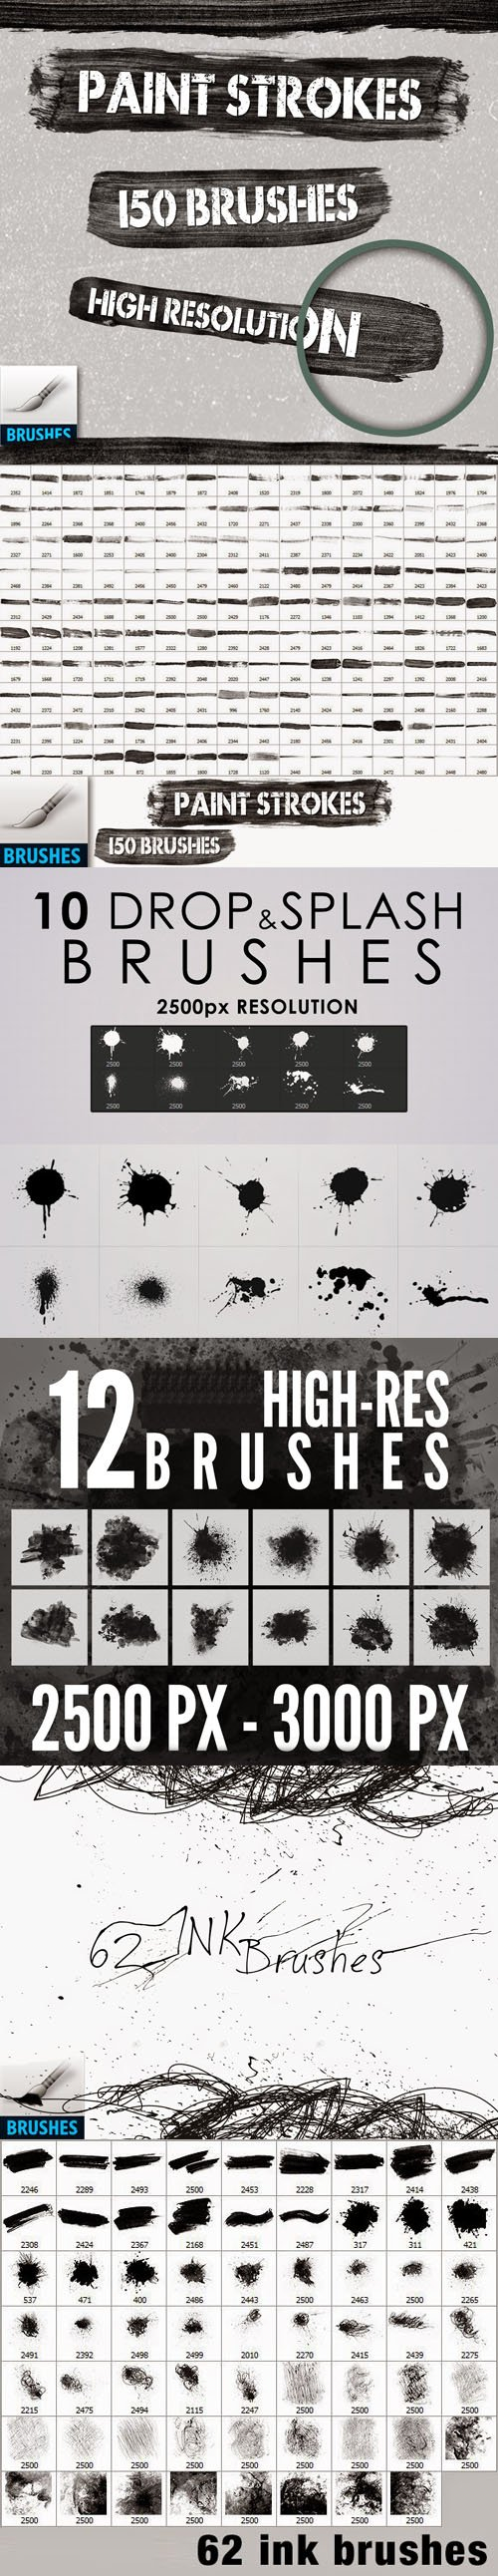 234 High-Res Photoshop Brushes Collection